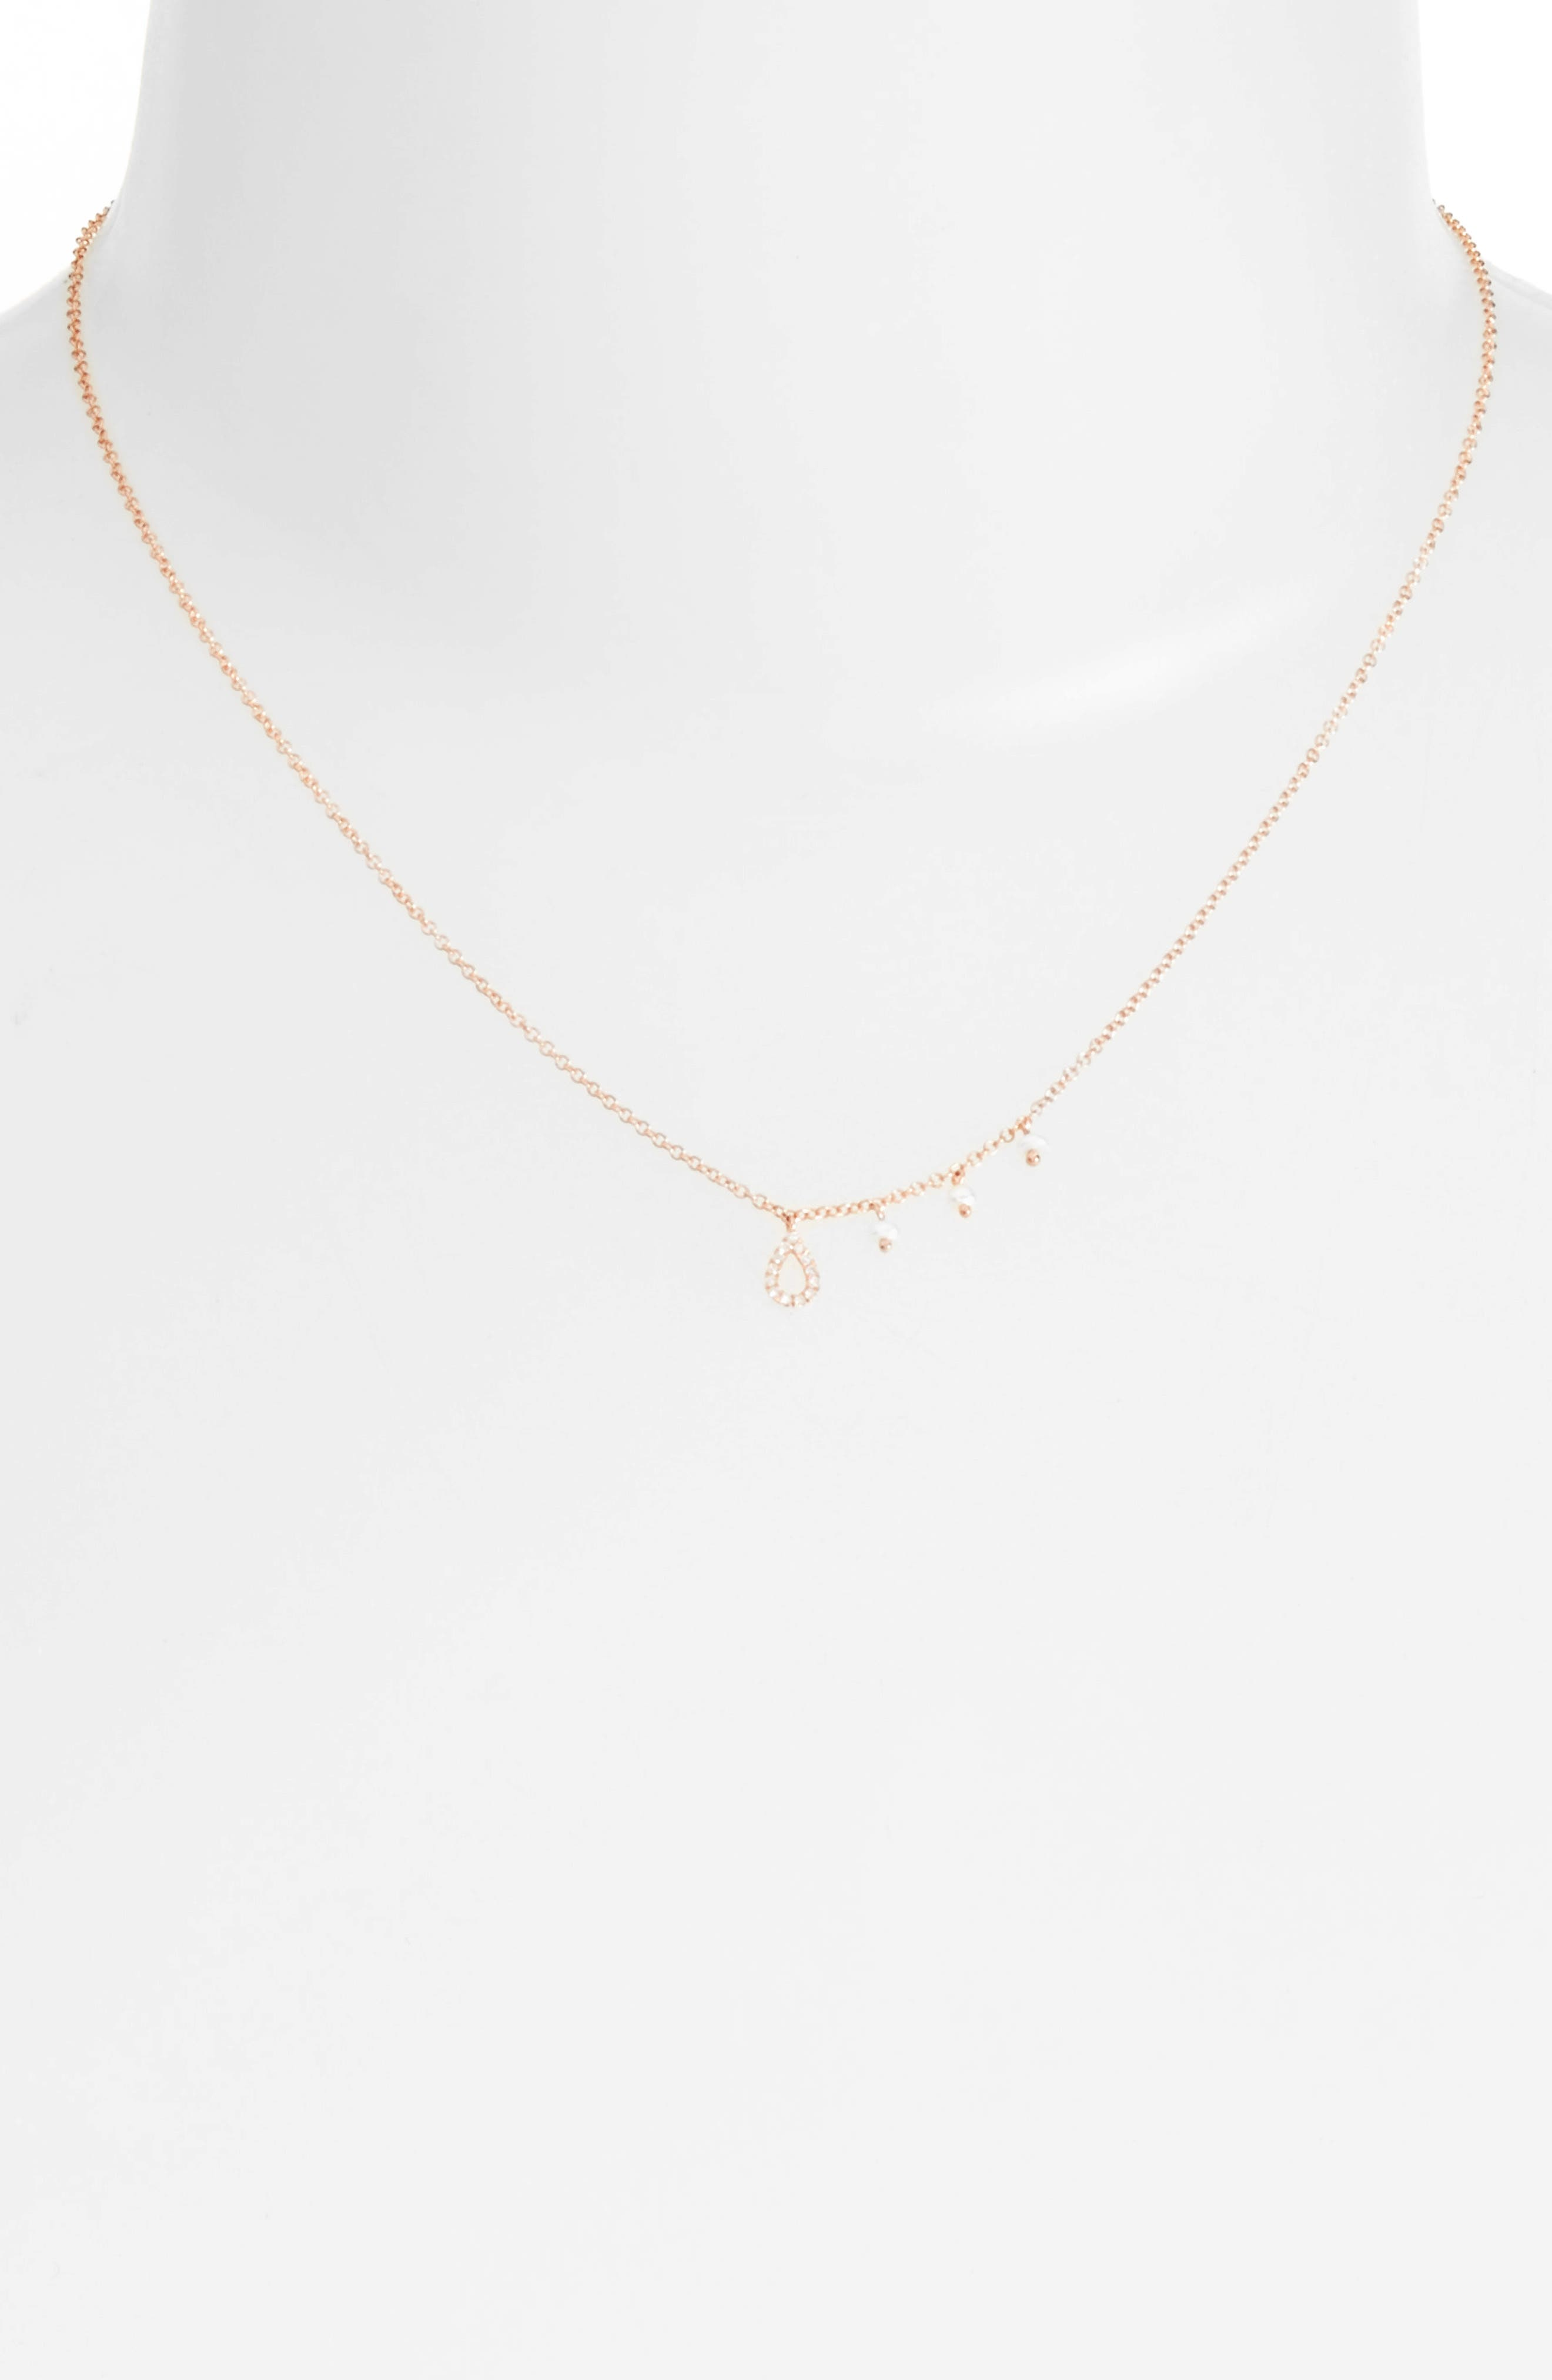 Diamond Teardrop Charm Collar Necklace,                             Alternate thumbnail 2, color,                             ROSE GOLD